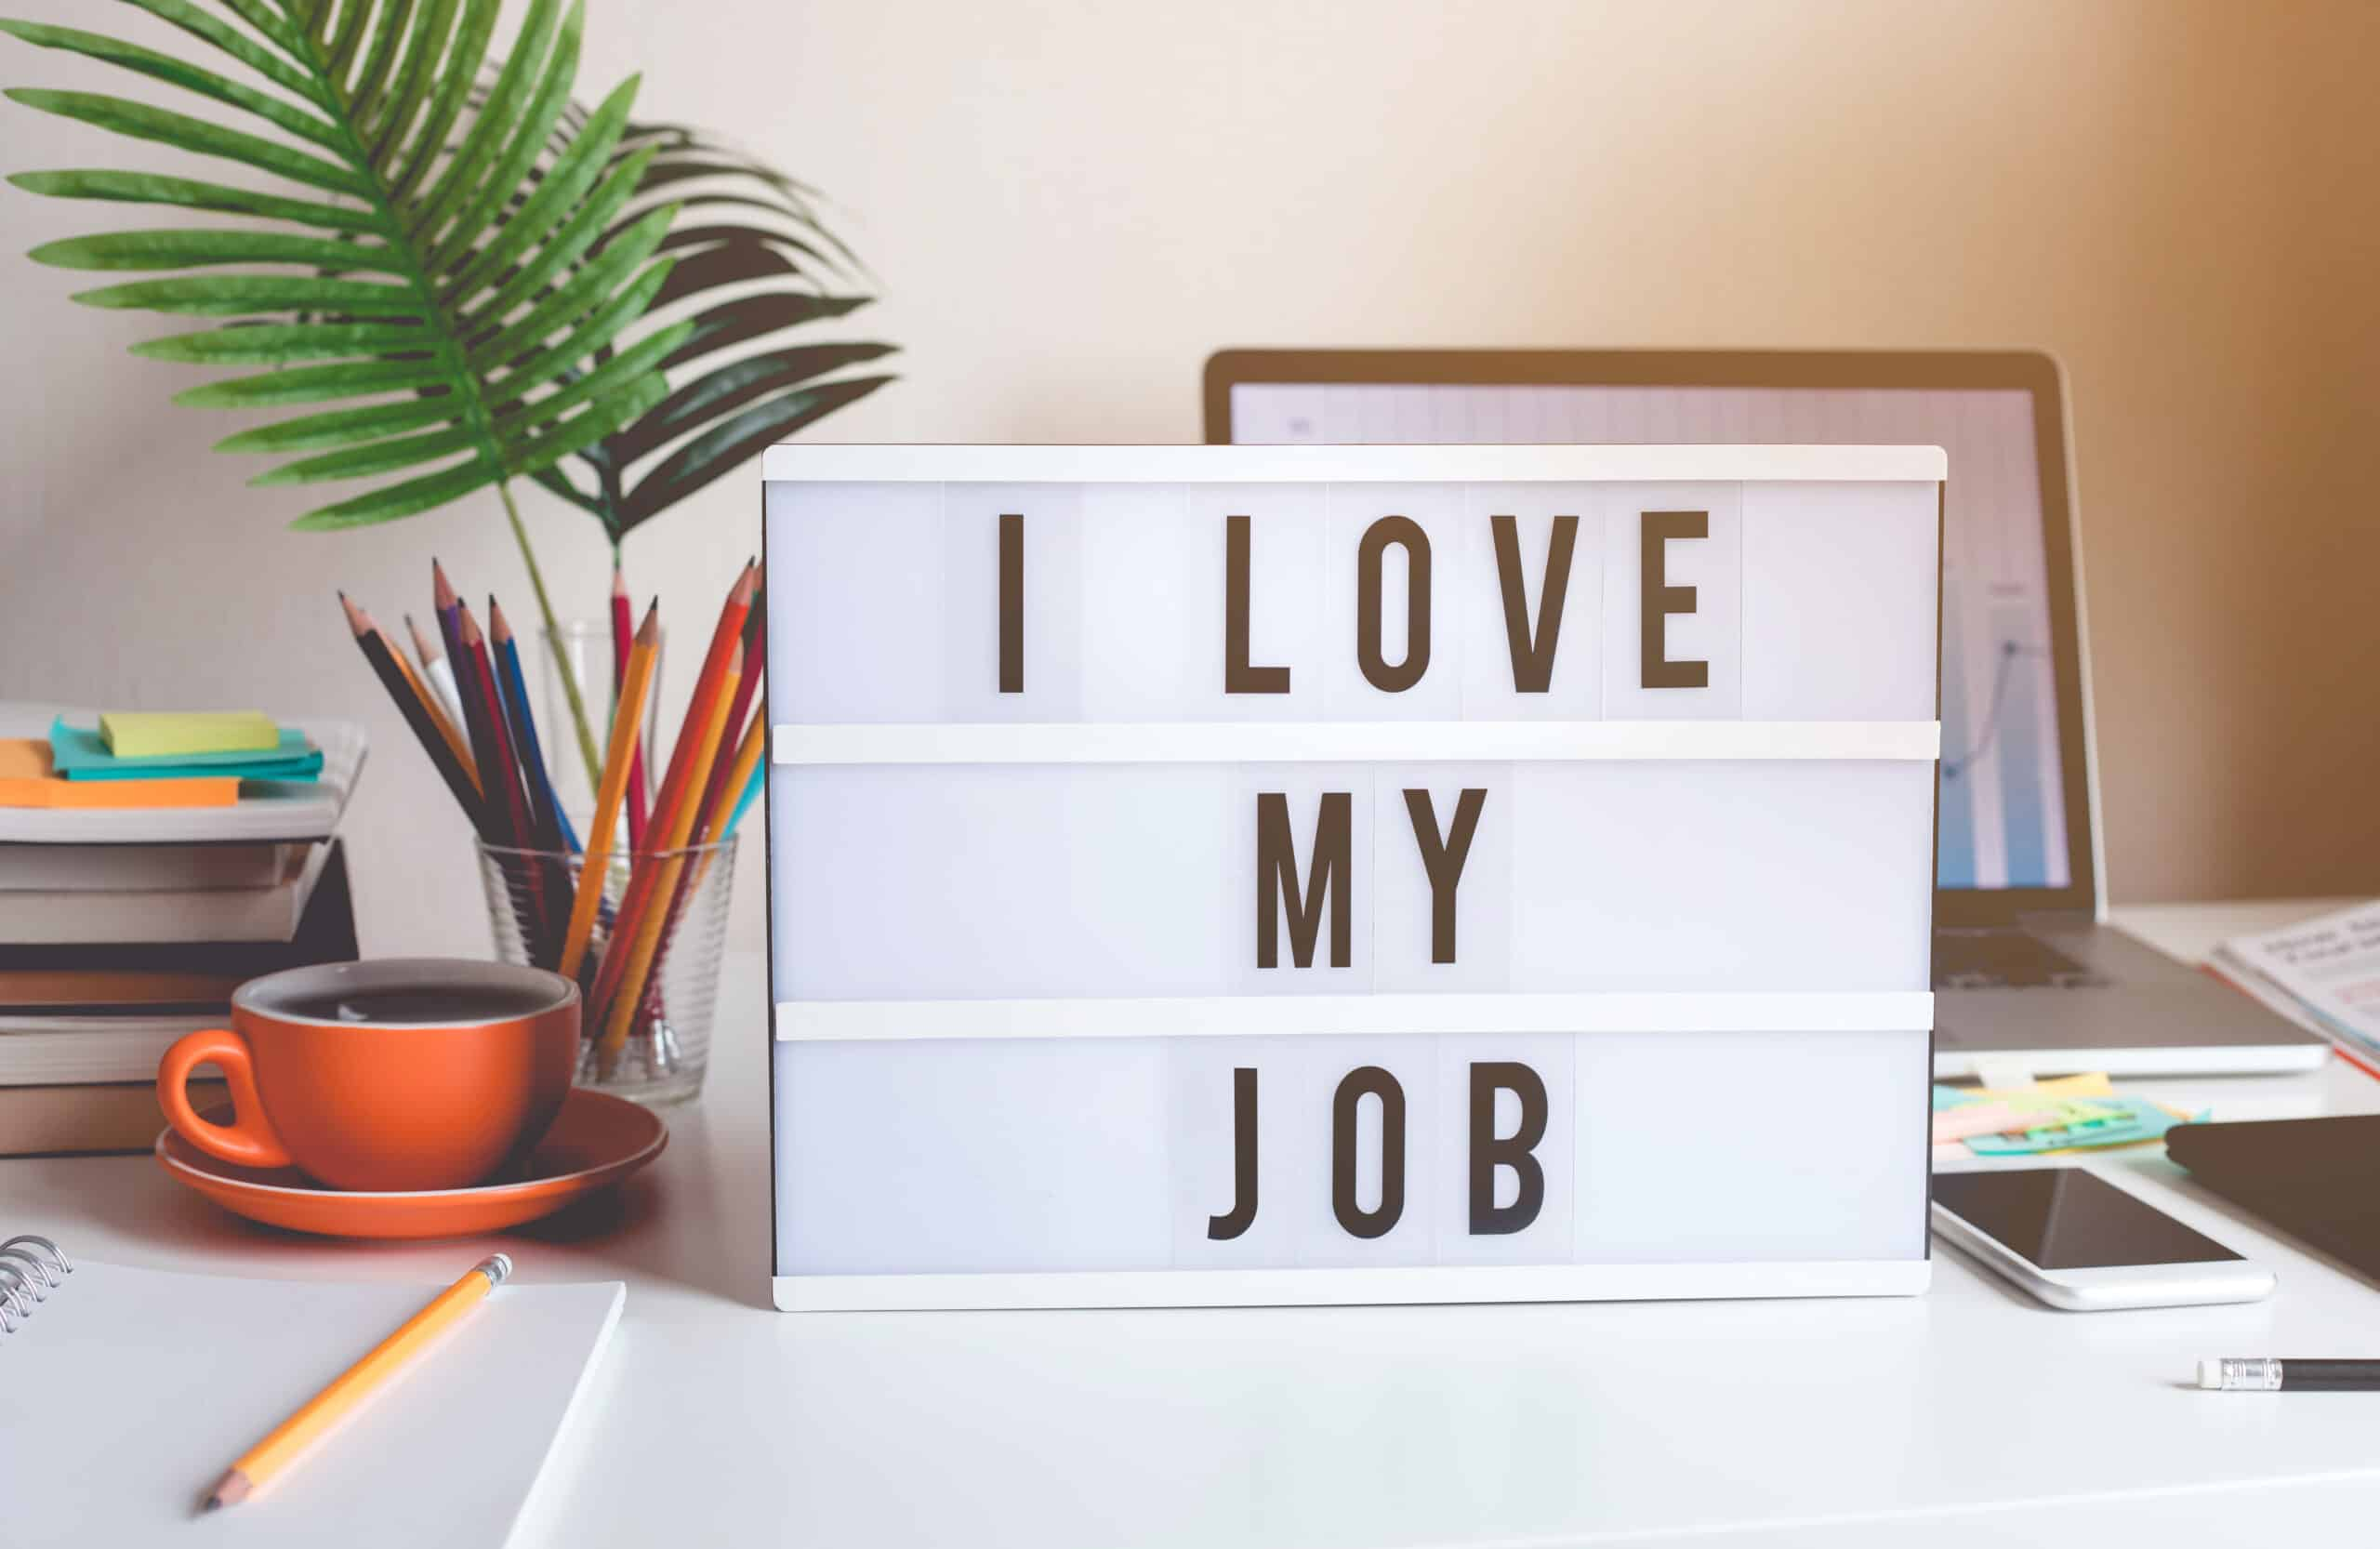 We Love Our Job – We Want You To Love Your Job Too